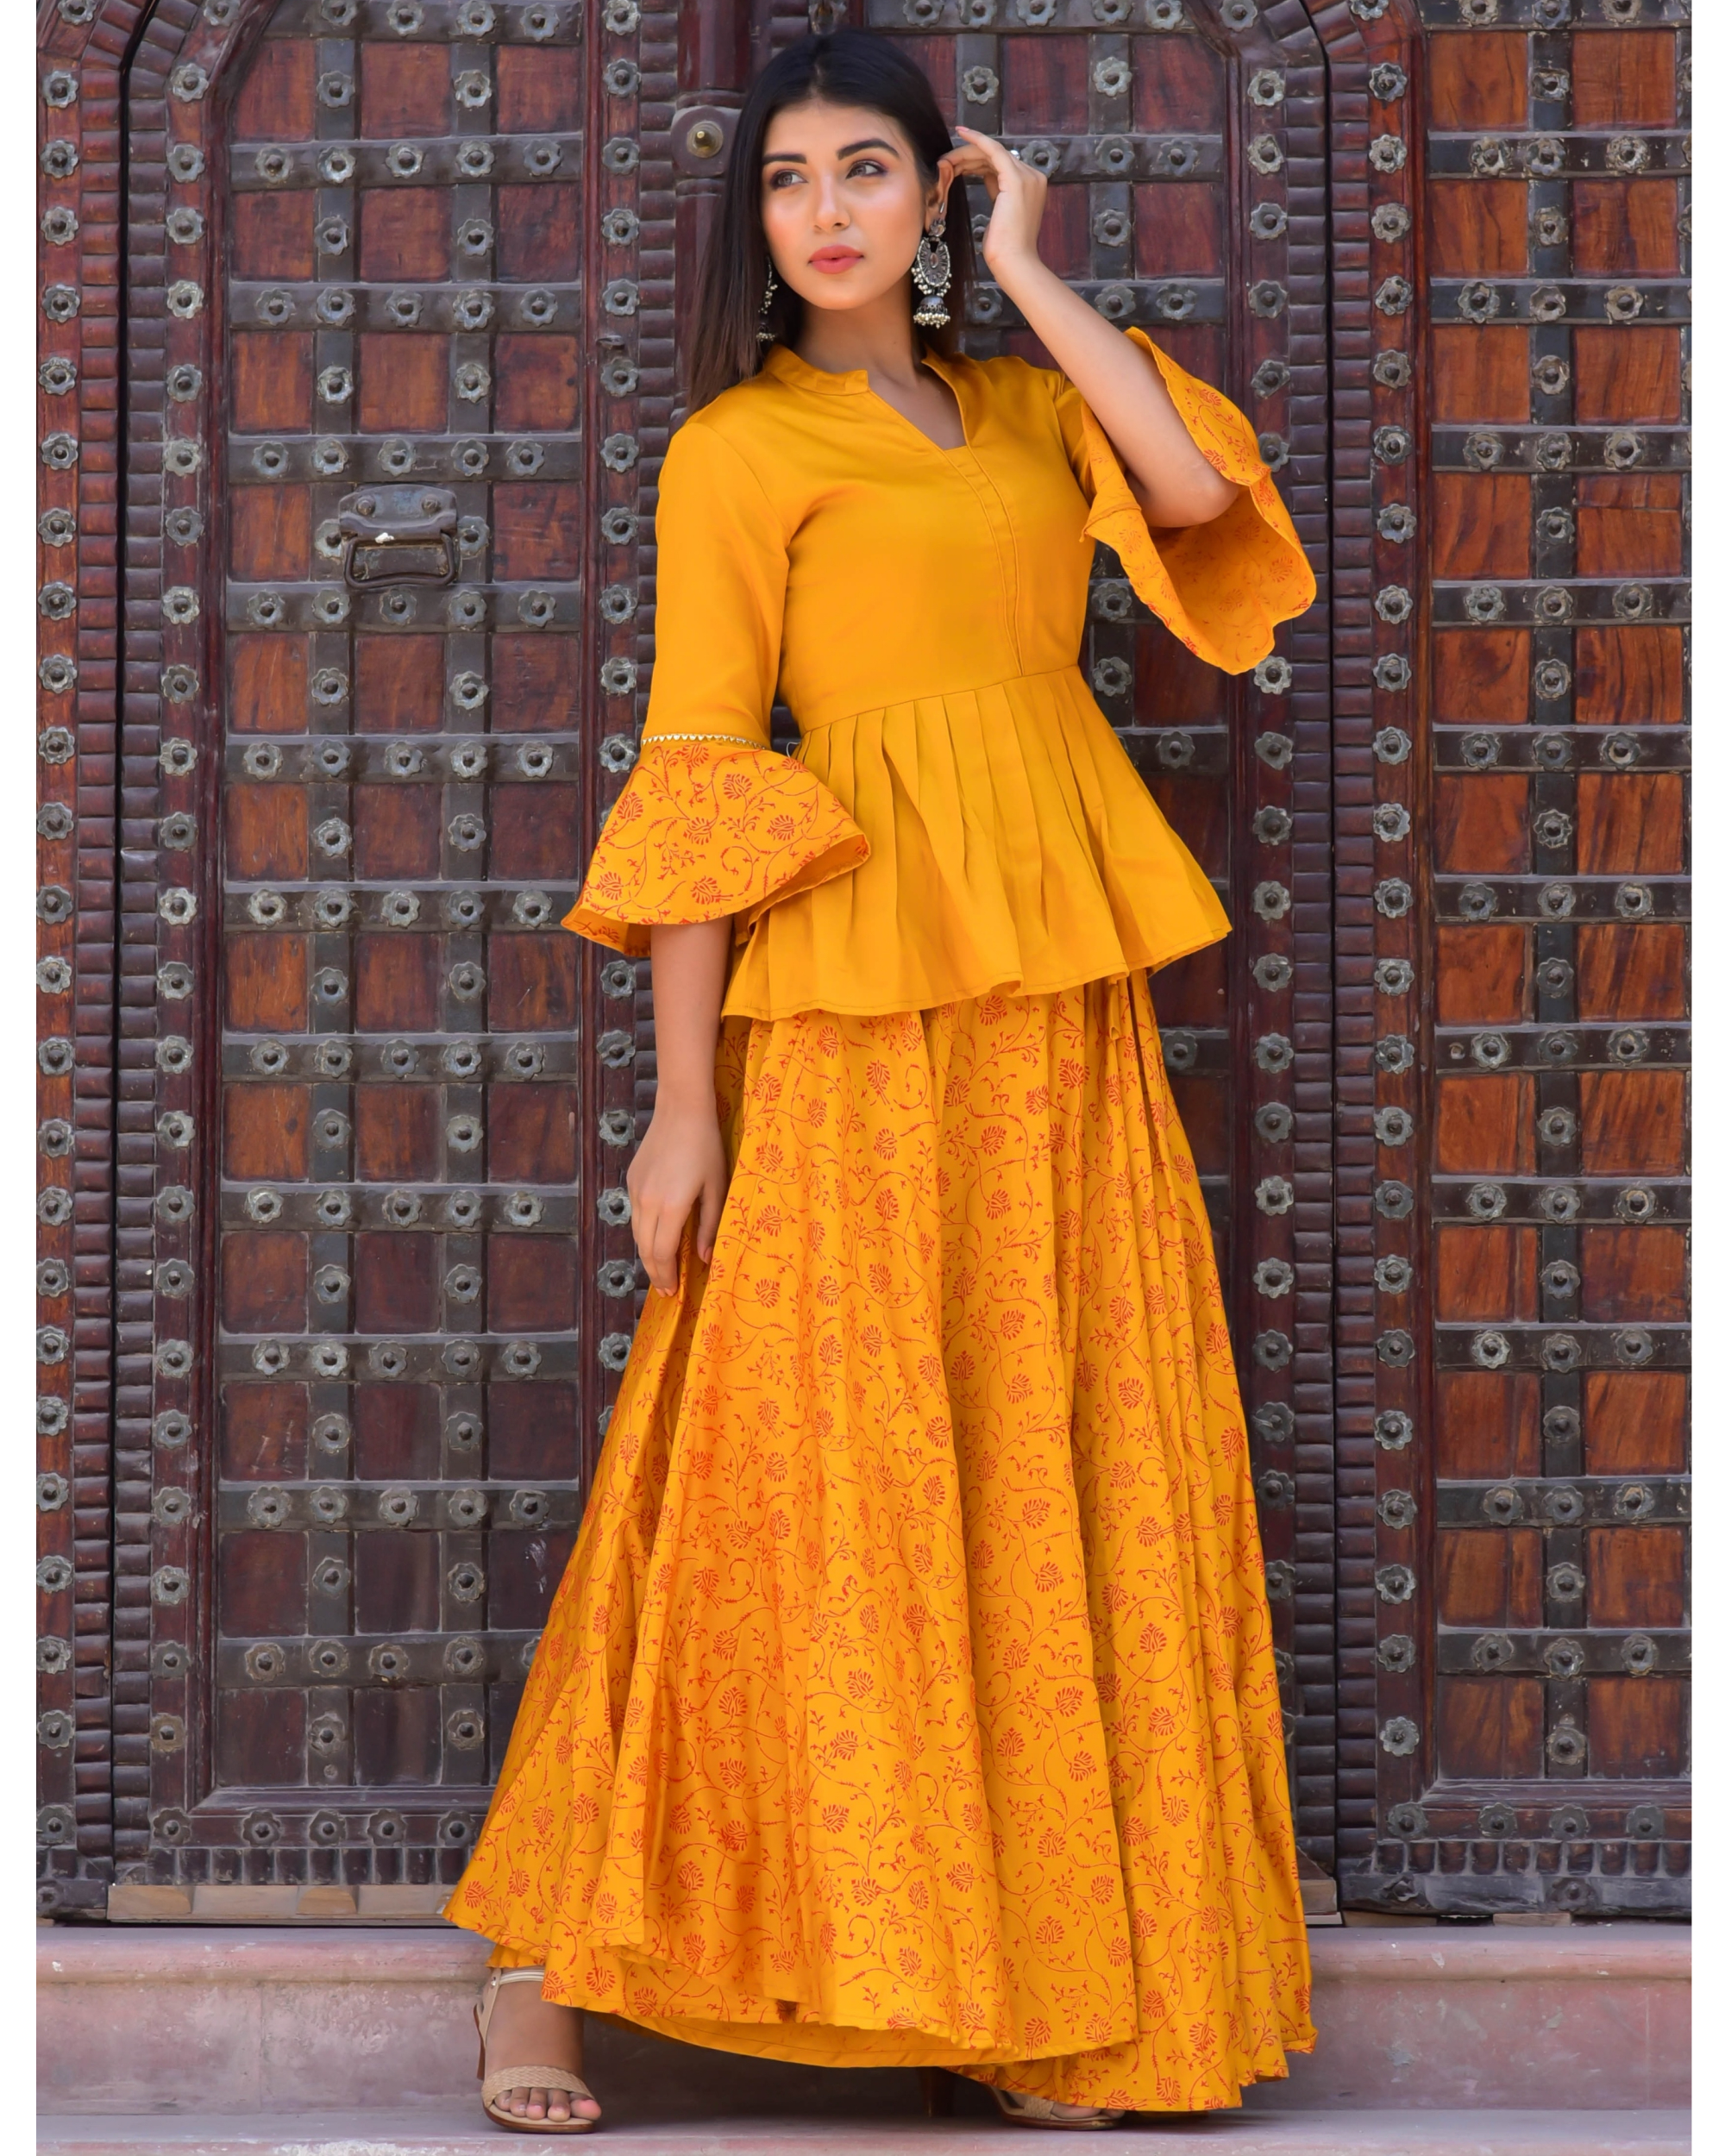 Mustard Yellow Block Printed Peplum Top And Lehenga Set Set Of Two By Chokhi Bandhani The Secret Label Buy the latest peplum tops now! mustard yellow block printed peplum top and lehenga set set of two